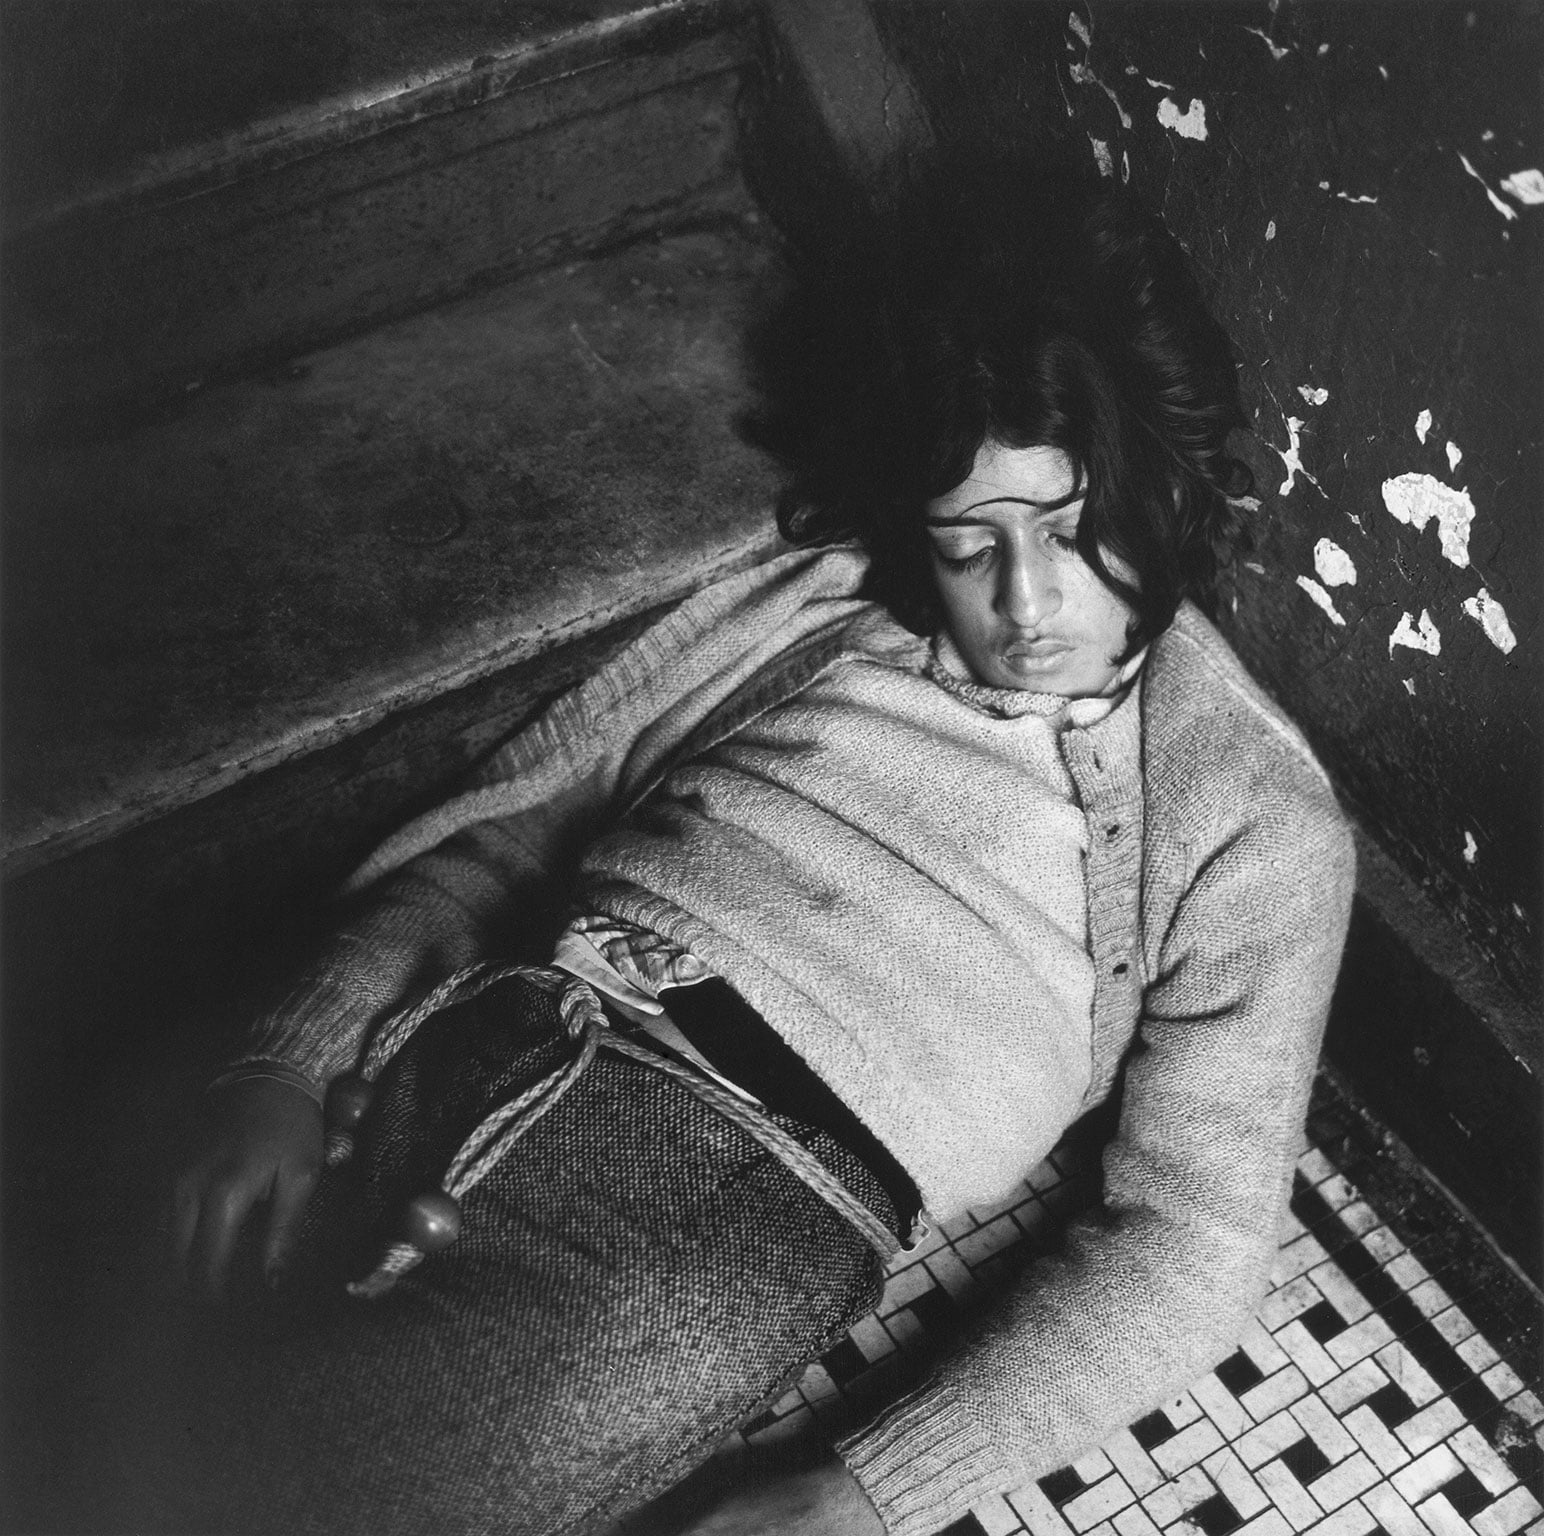 Art From Elsewhere, Birmingham Museum - Peter Hujar, Girl in my Hallway, 1976 © The Peter Hujar Archive, courtesy Matthew Marks Gallery, New York